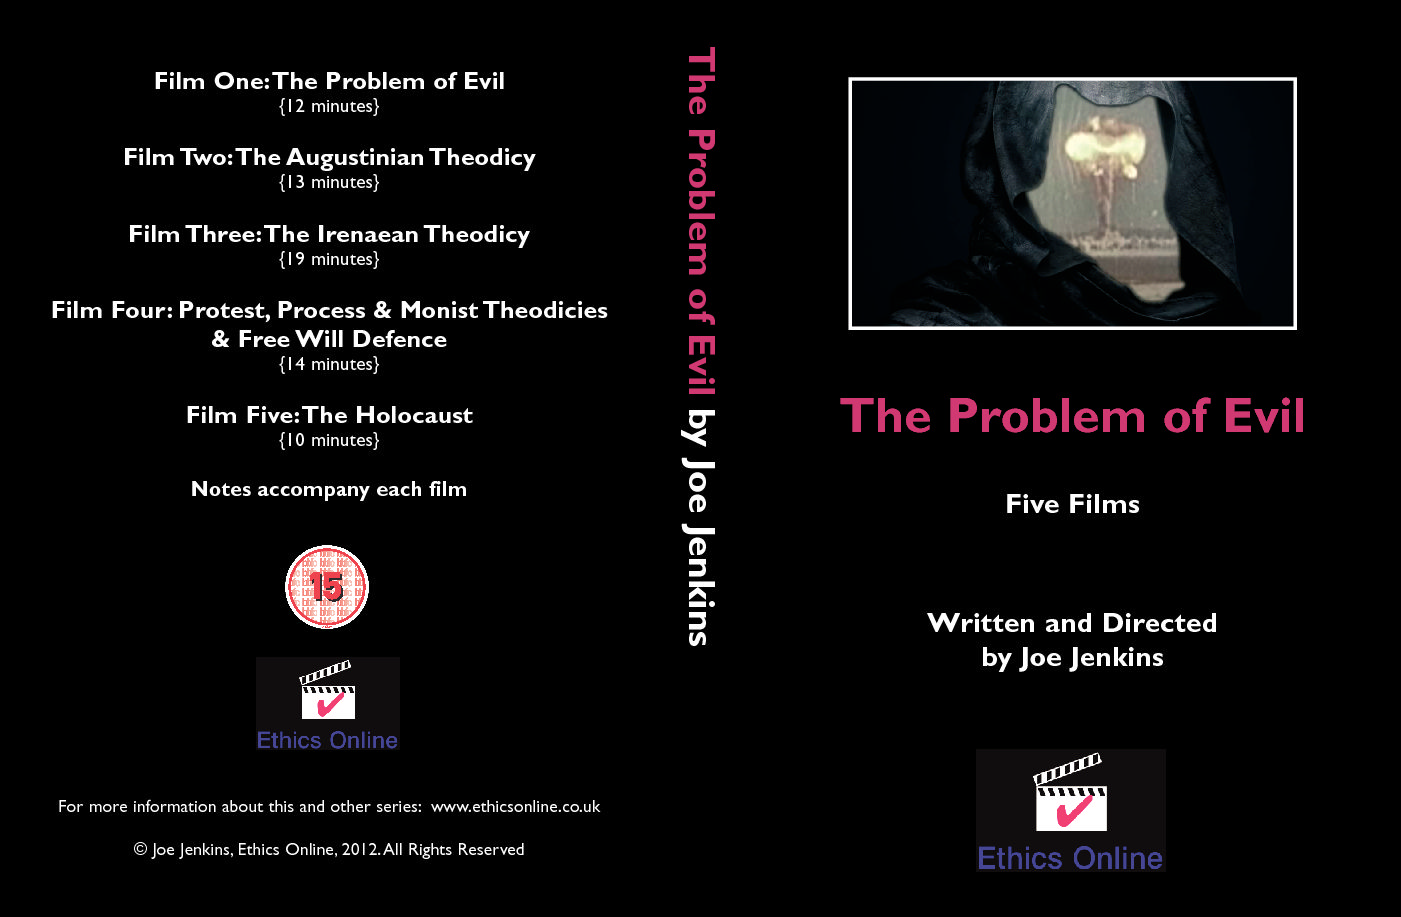 The problem of Evil DVD